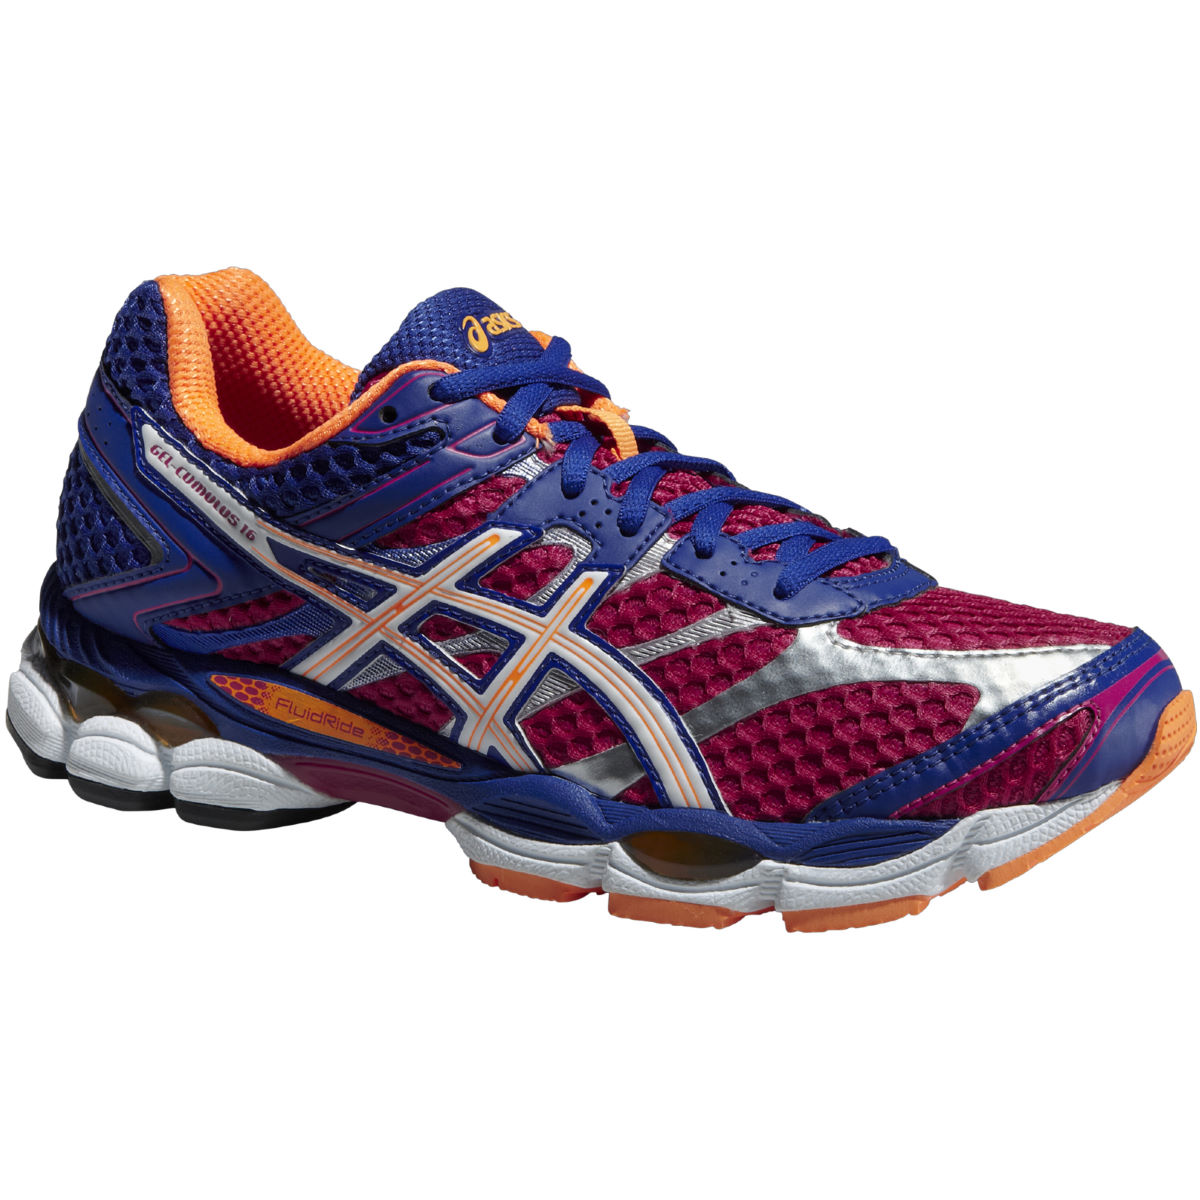 Asics Women's Gel-Cumulus 16 Shoes - SS15